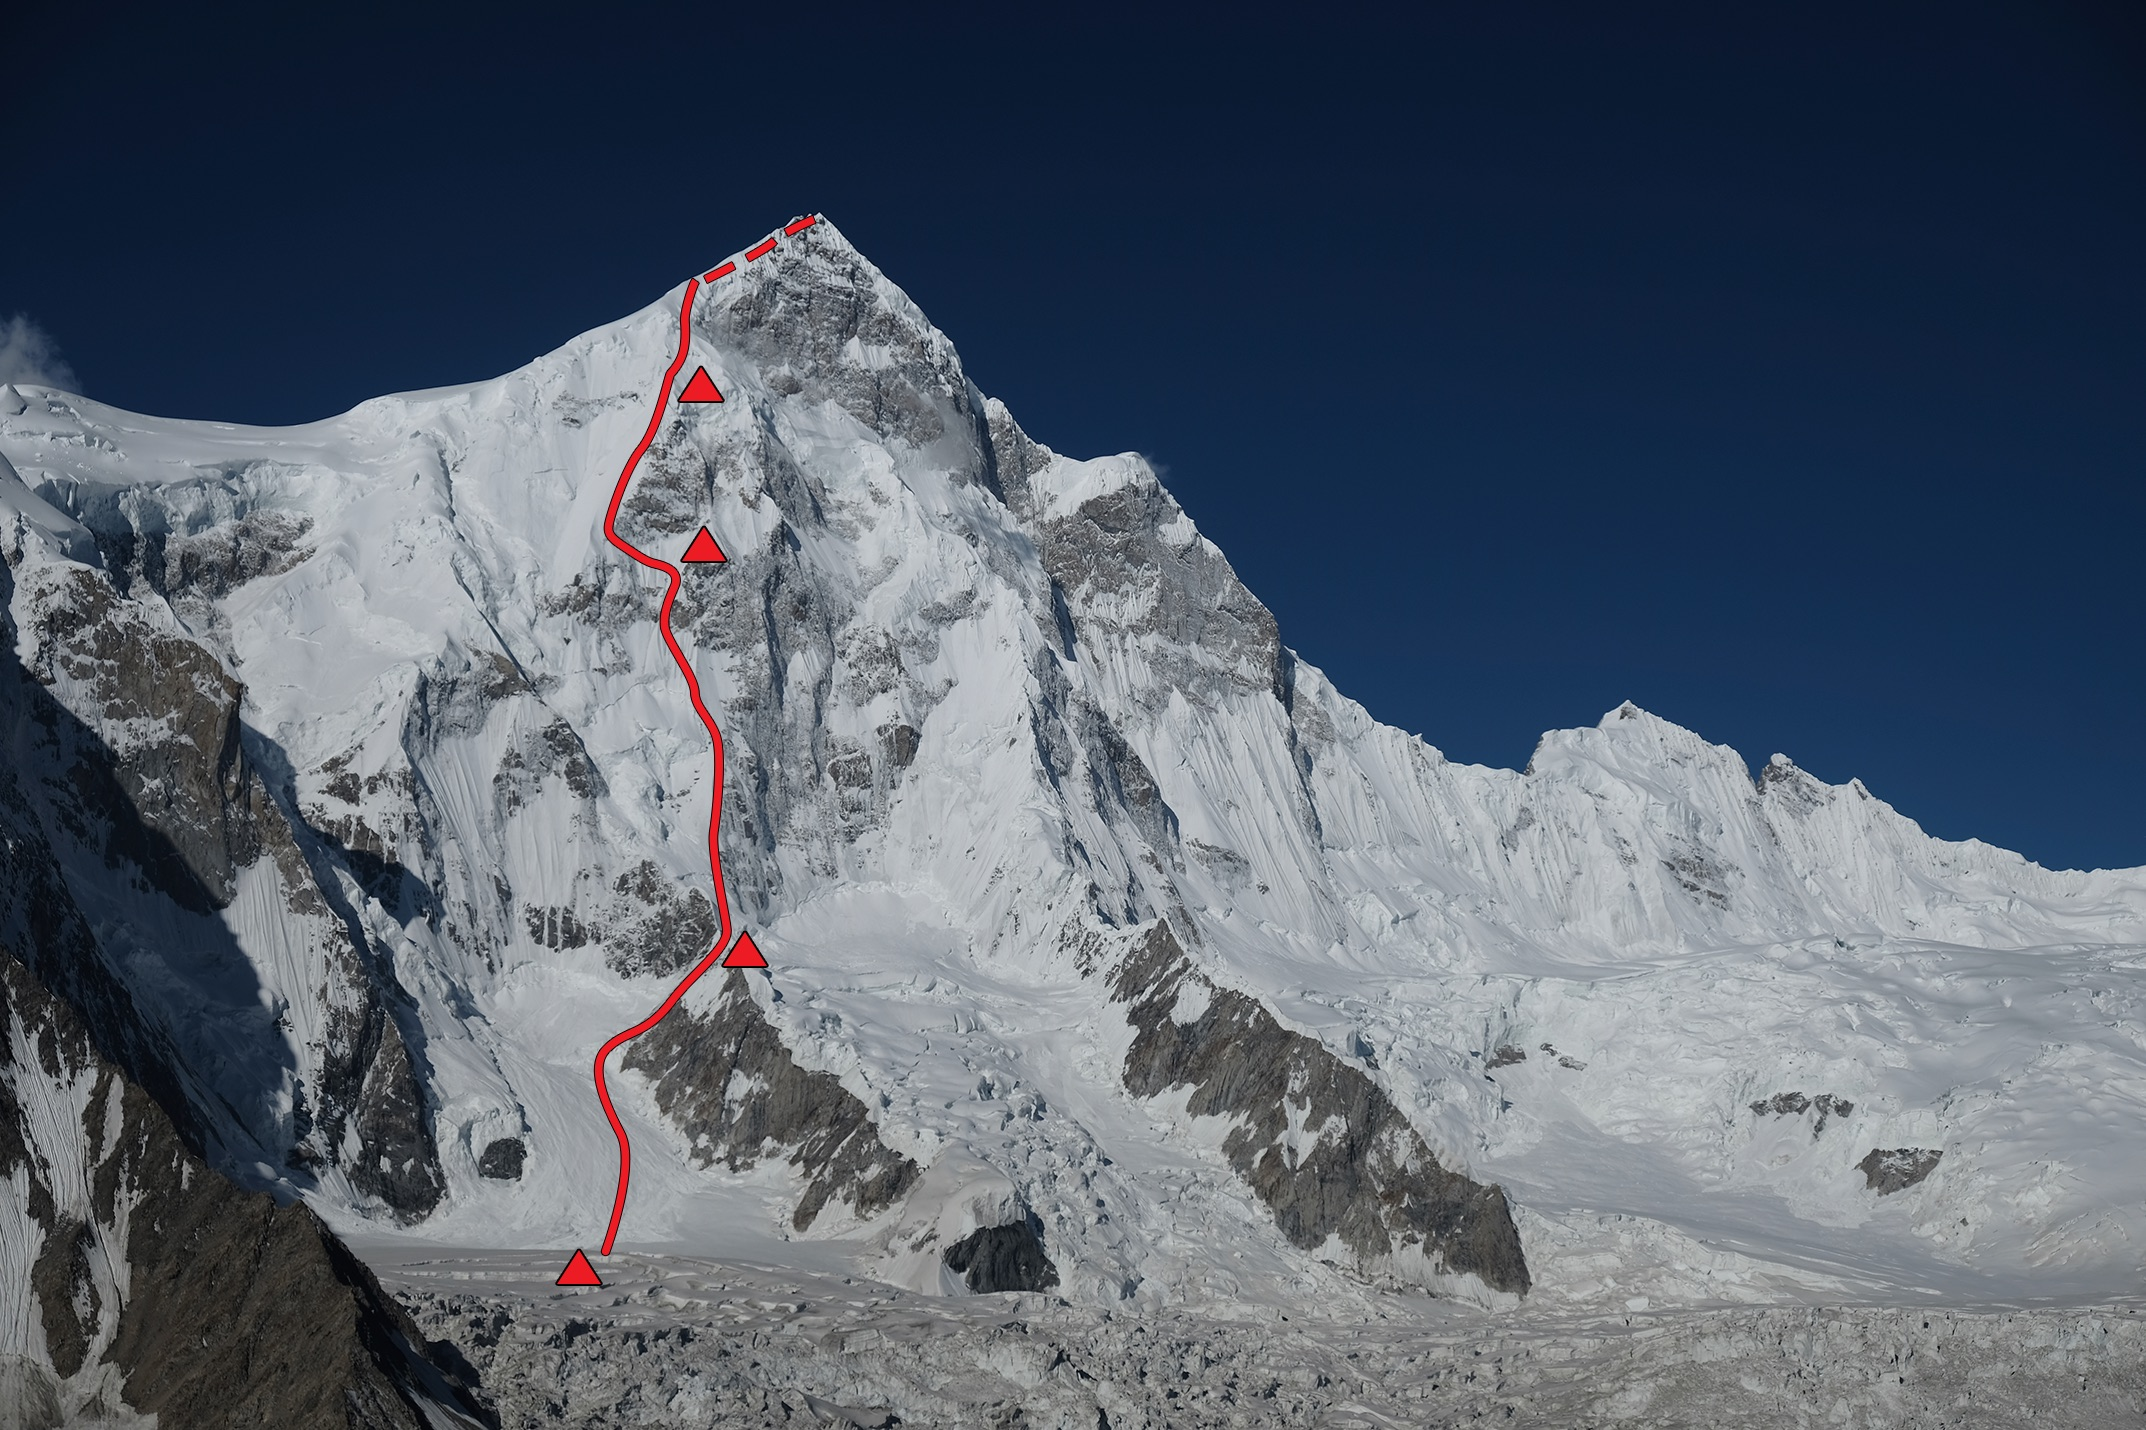 """The northeast face of Shispare (7,611 meters) and the line of Shukriya (""""Thanks""""). Hiraide and Nakajima bivied four times on the face, including two nights at the highest camp shown, plus two more nights during the descent. The mountain had only been climbed twice before, both times by the eastern ridge (left), which is the route the 2017 climbers descended."""